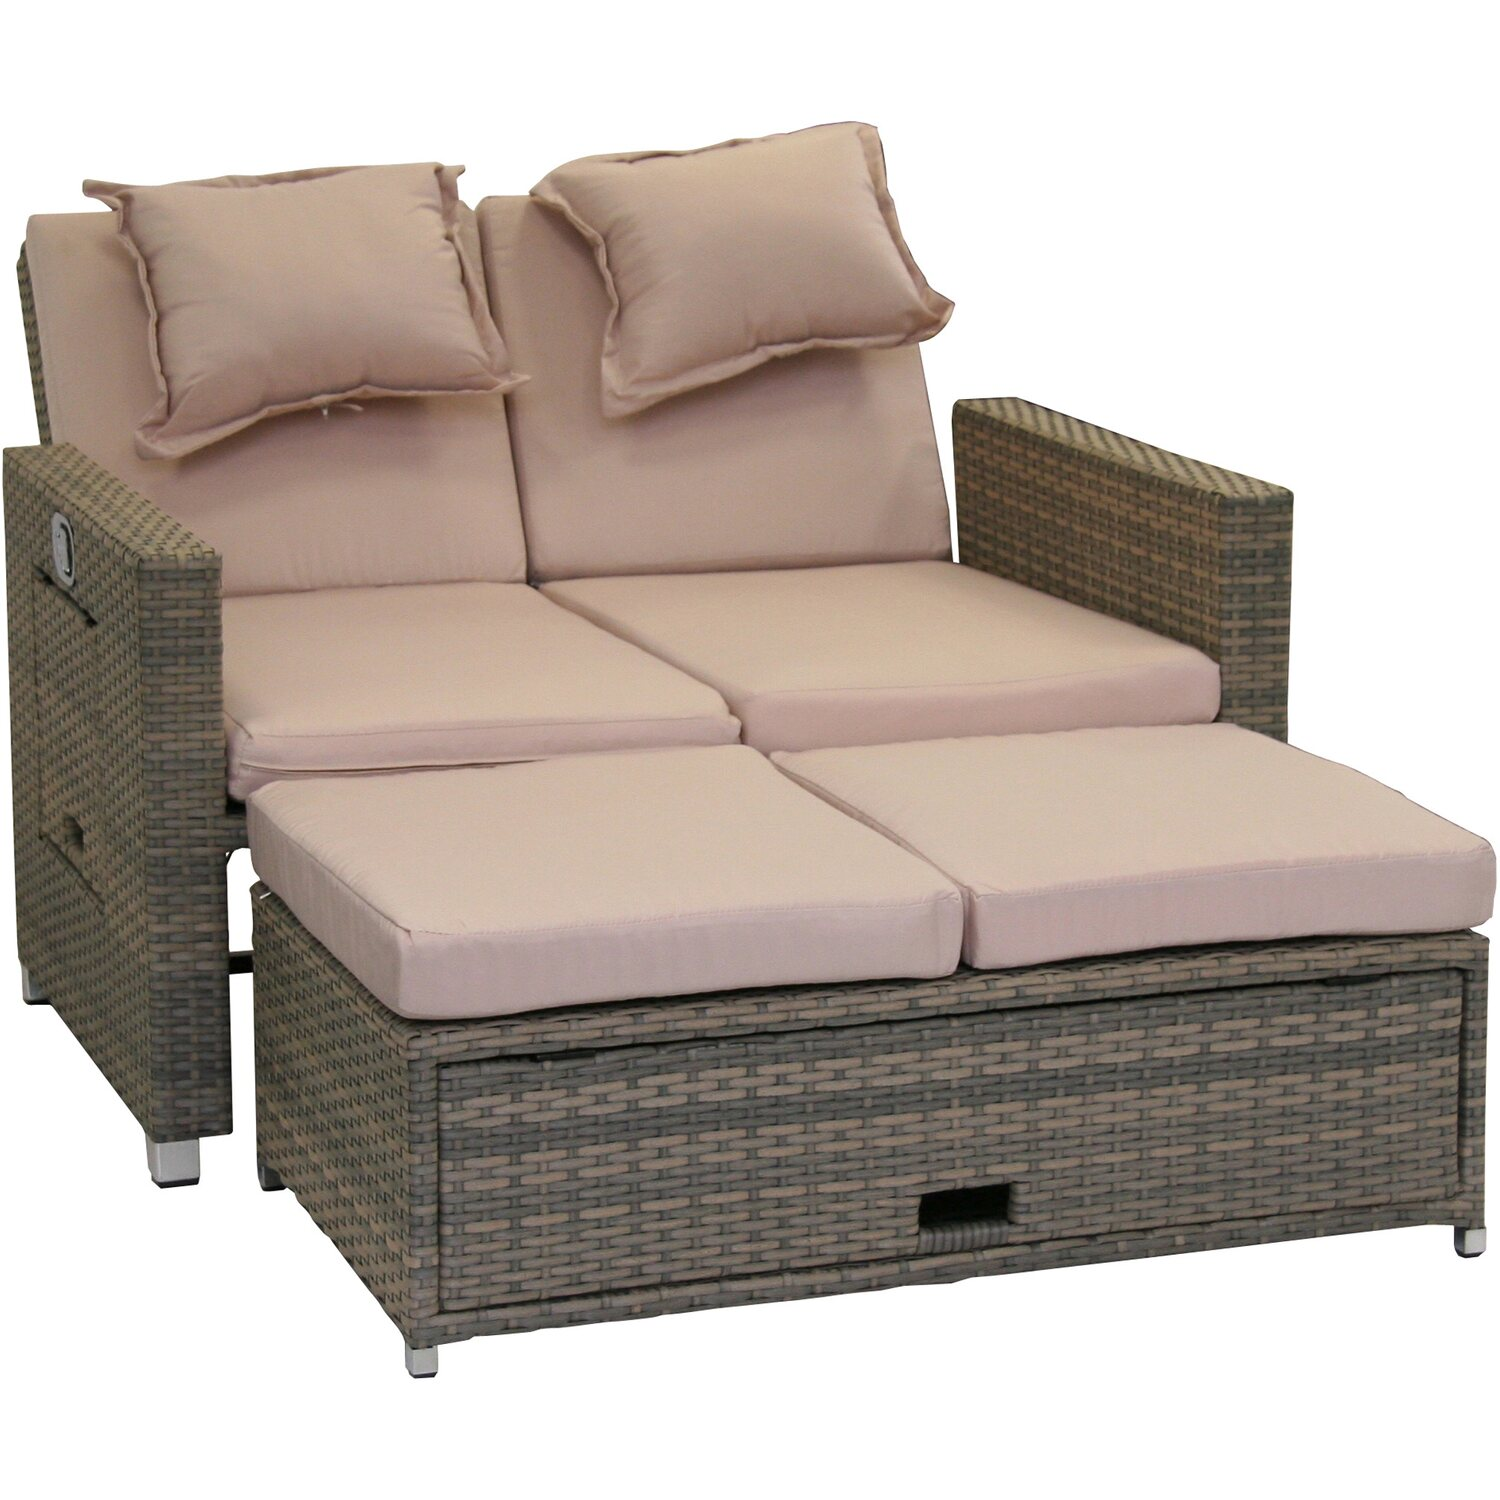 Greemotion  Multisofa Bahia Twin